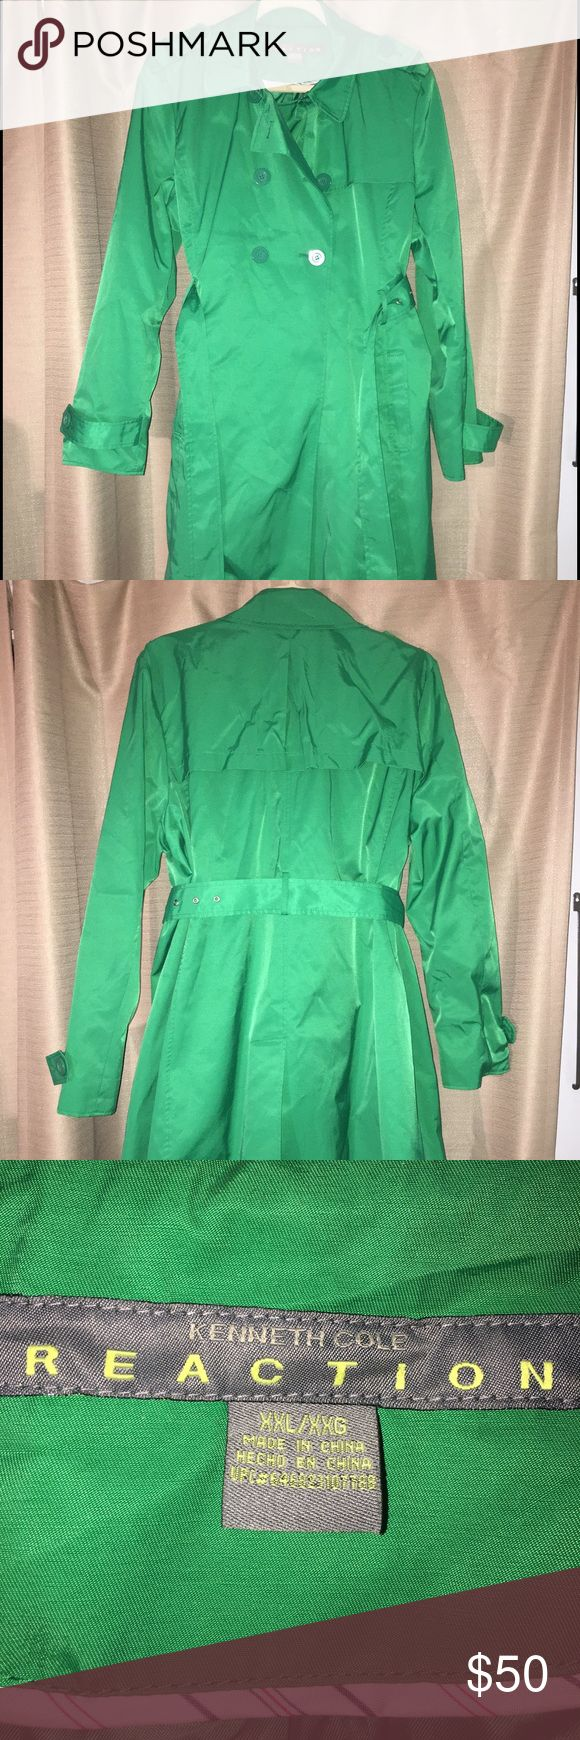 Kenneth Cole Kelly Green Trench Coat Woman's double breasted Kelly green trench. Only worn a hand full of times, in like new condition. Kenneth Cole Reaction Jackets & Coats Trench Coats